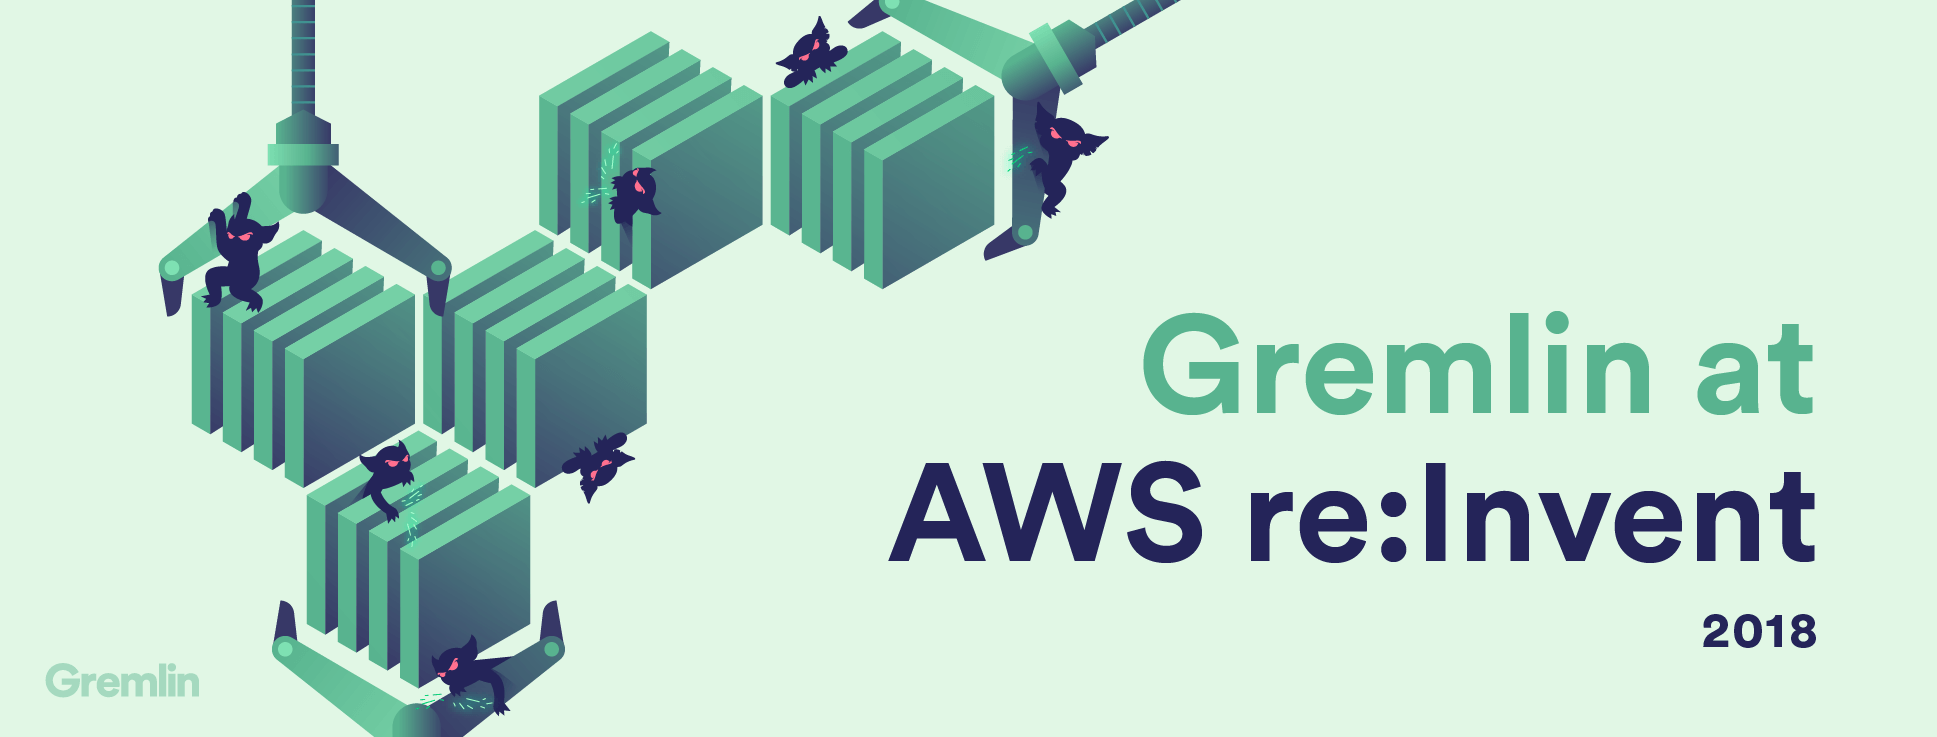 Gremlin @AWS re:Invent 2018